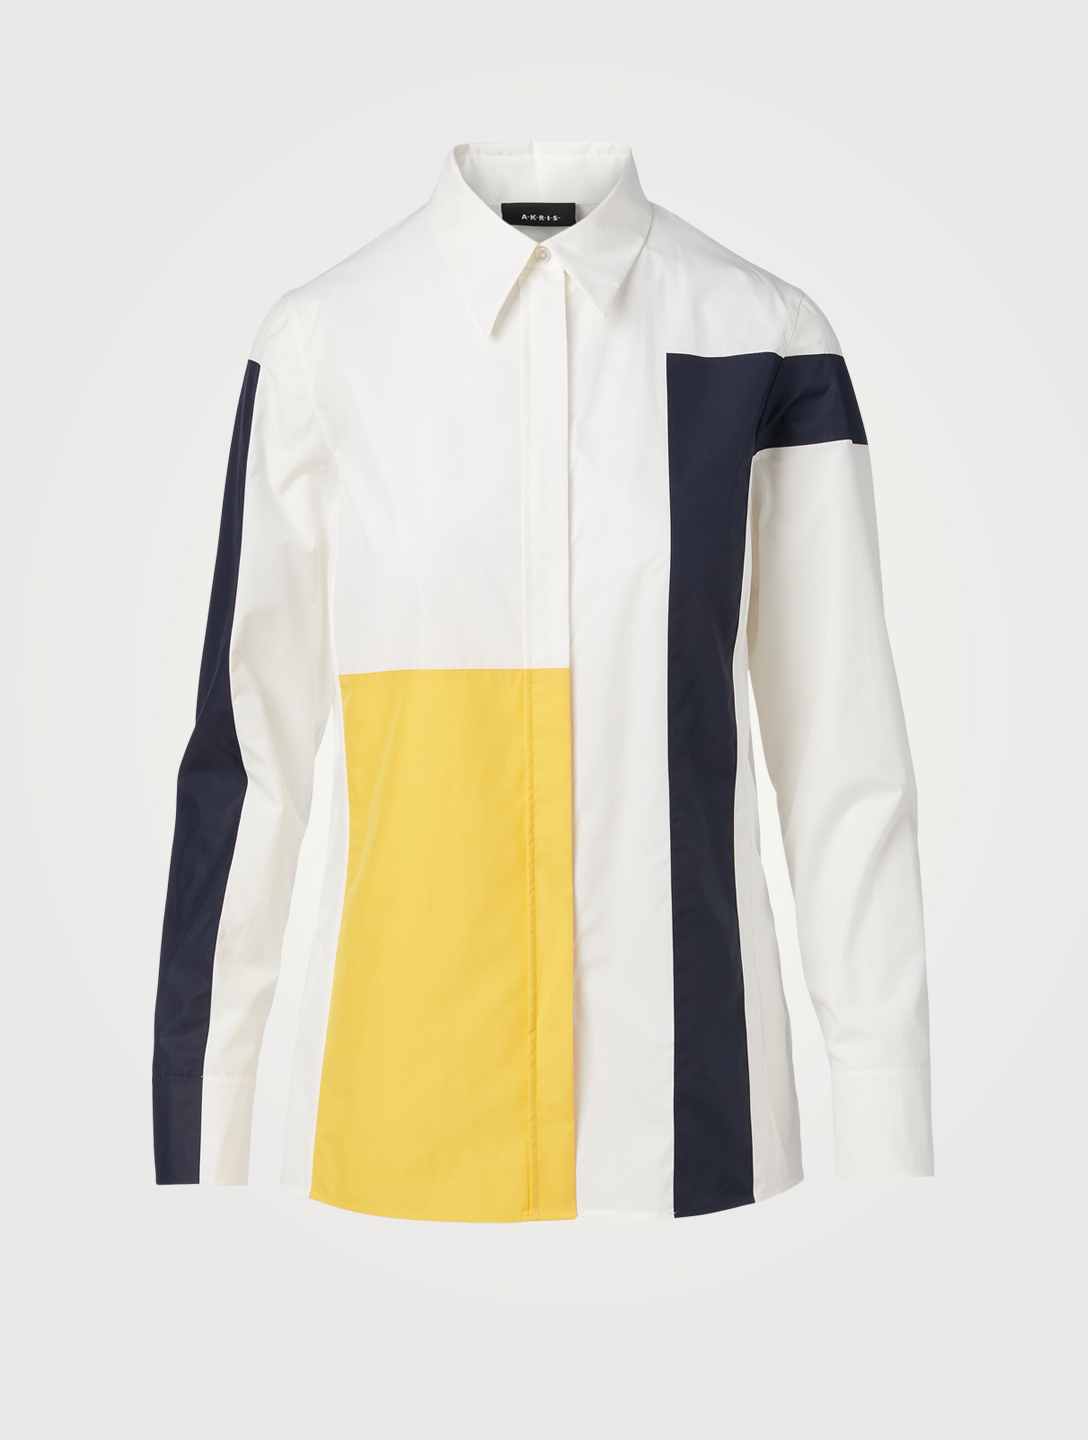 AKRIS Cotton Patchwork Shirt Women's White